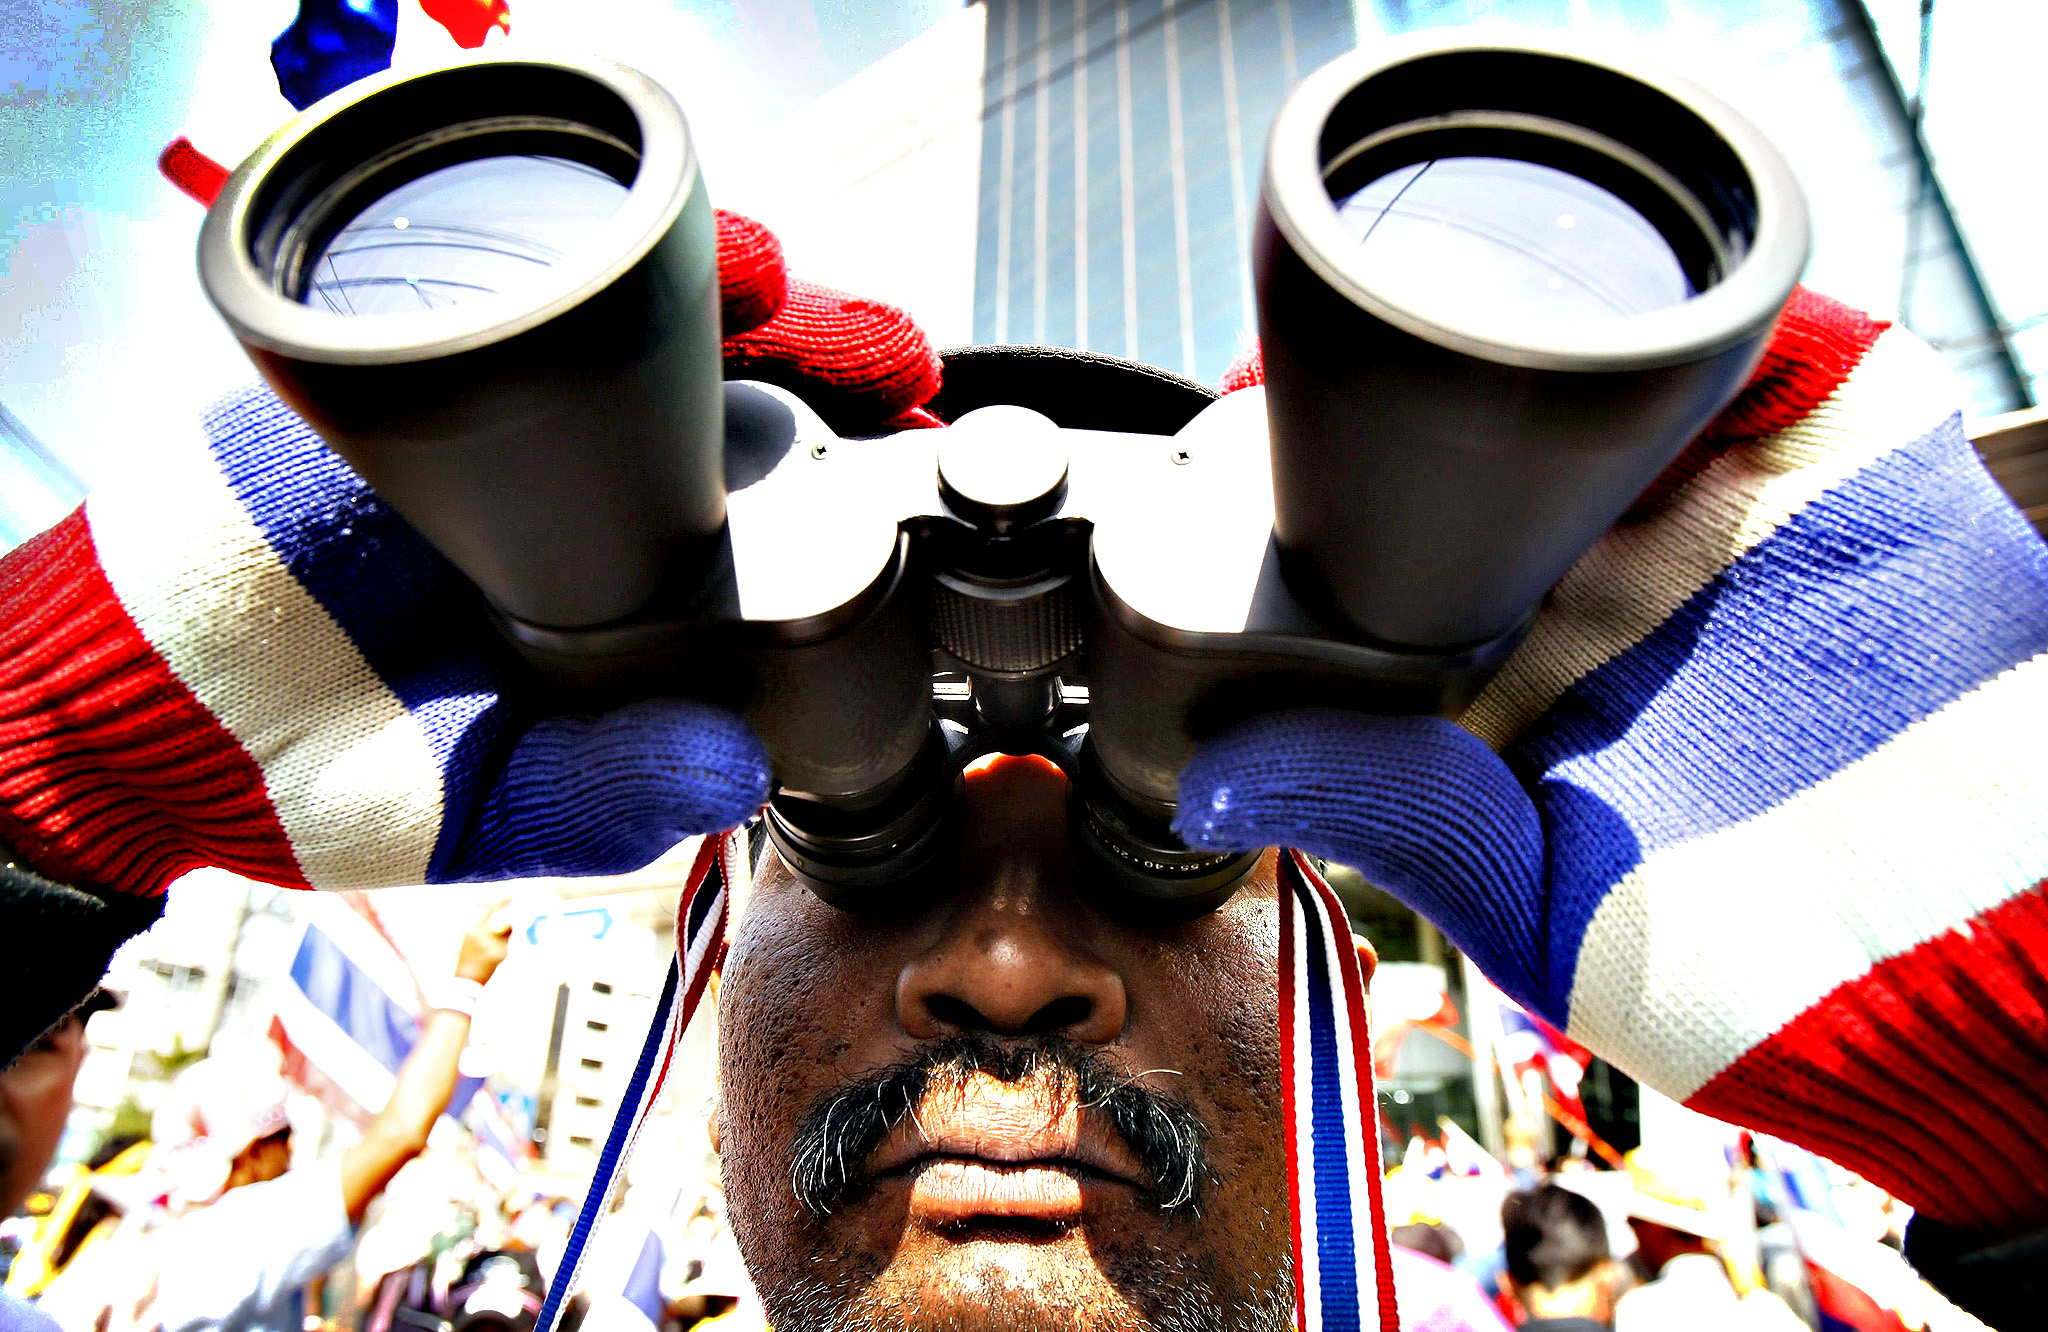 An anti-government protester uses a pair of binoculars during a rally in central Bangkok January 16, 2014. Protesters in Thailand trying to paralyse ministries to force the government to resign said they would target revenue offices on Thursday, but their numbers appeared to be dwindling and ministers say the movement could be running out of steam.